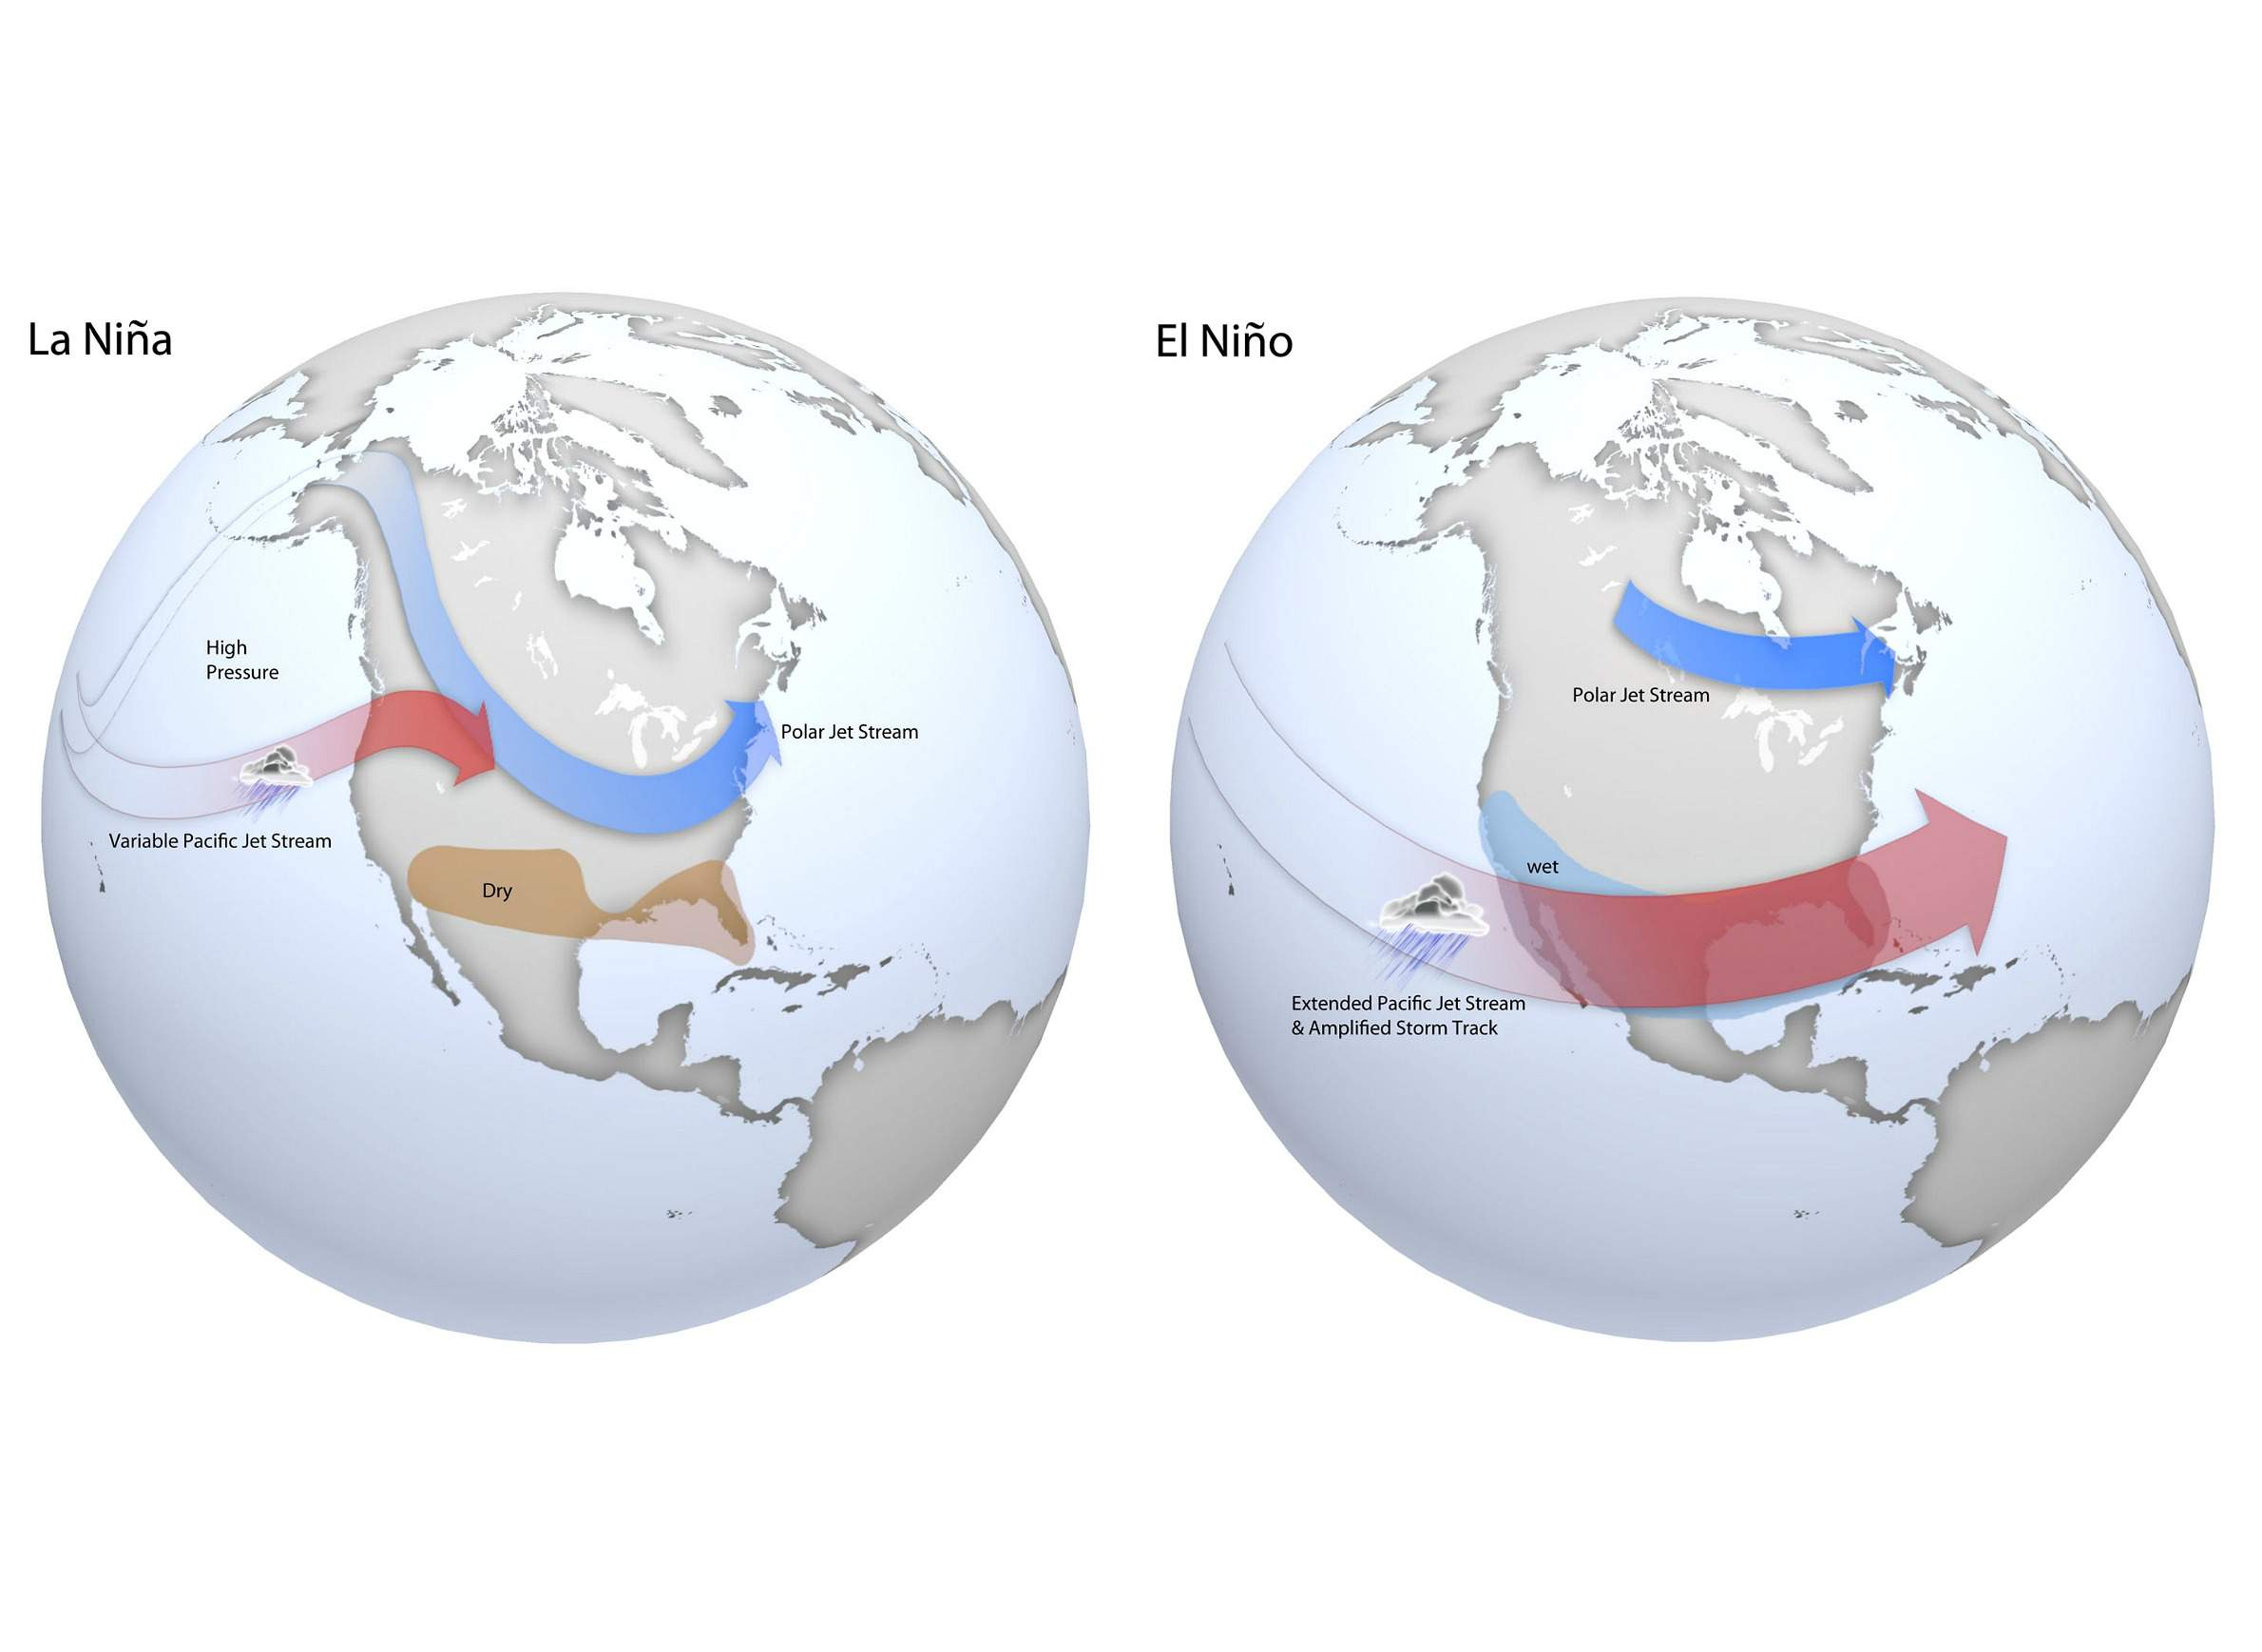 ENSO cycle map